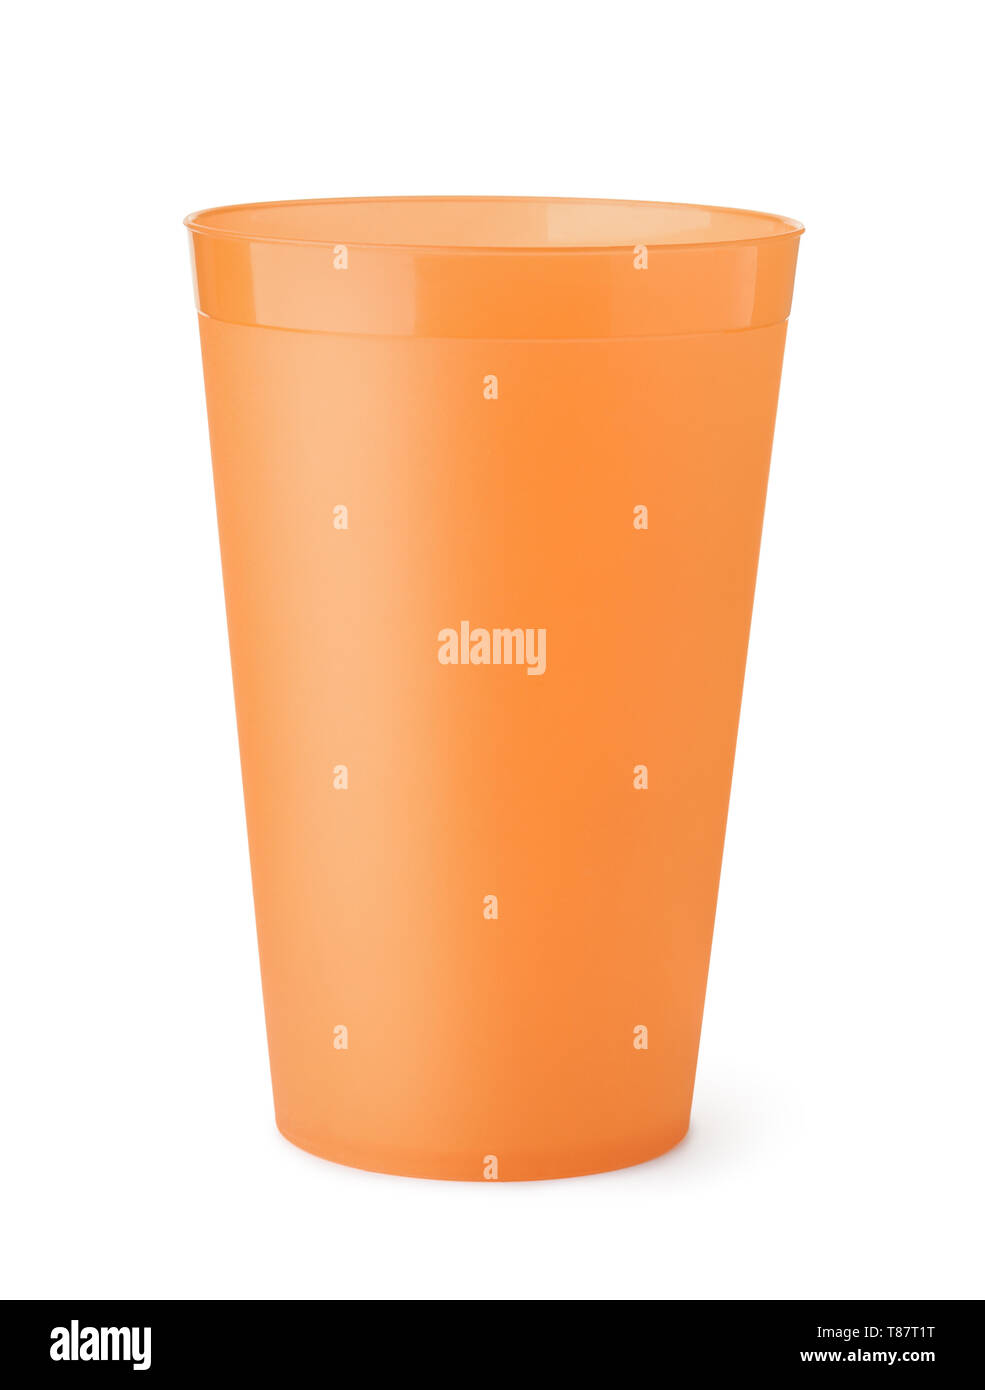 Front view of orange plastic cup isolated on white - Stock Image